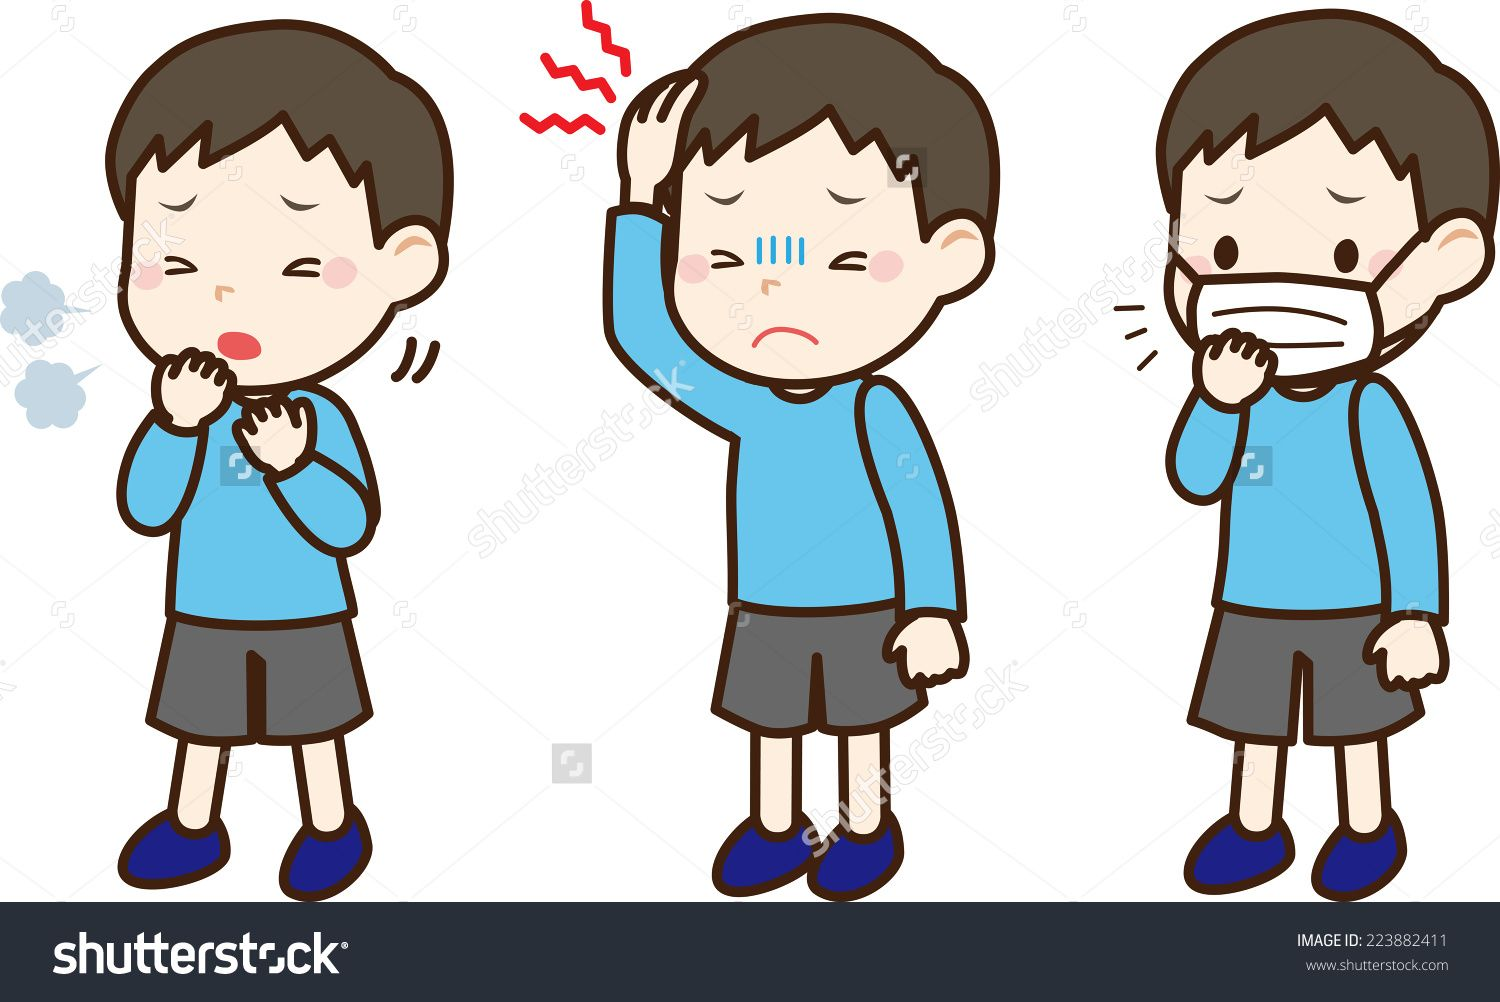 Boys clipart sick, Boys sick Transparent FREE for download.